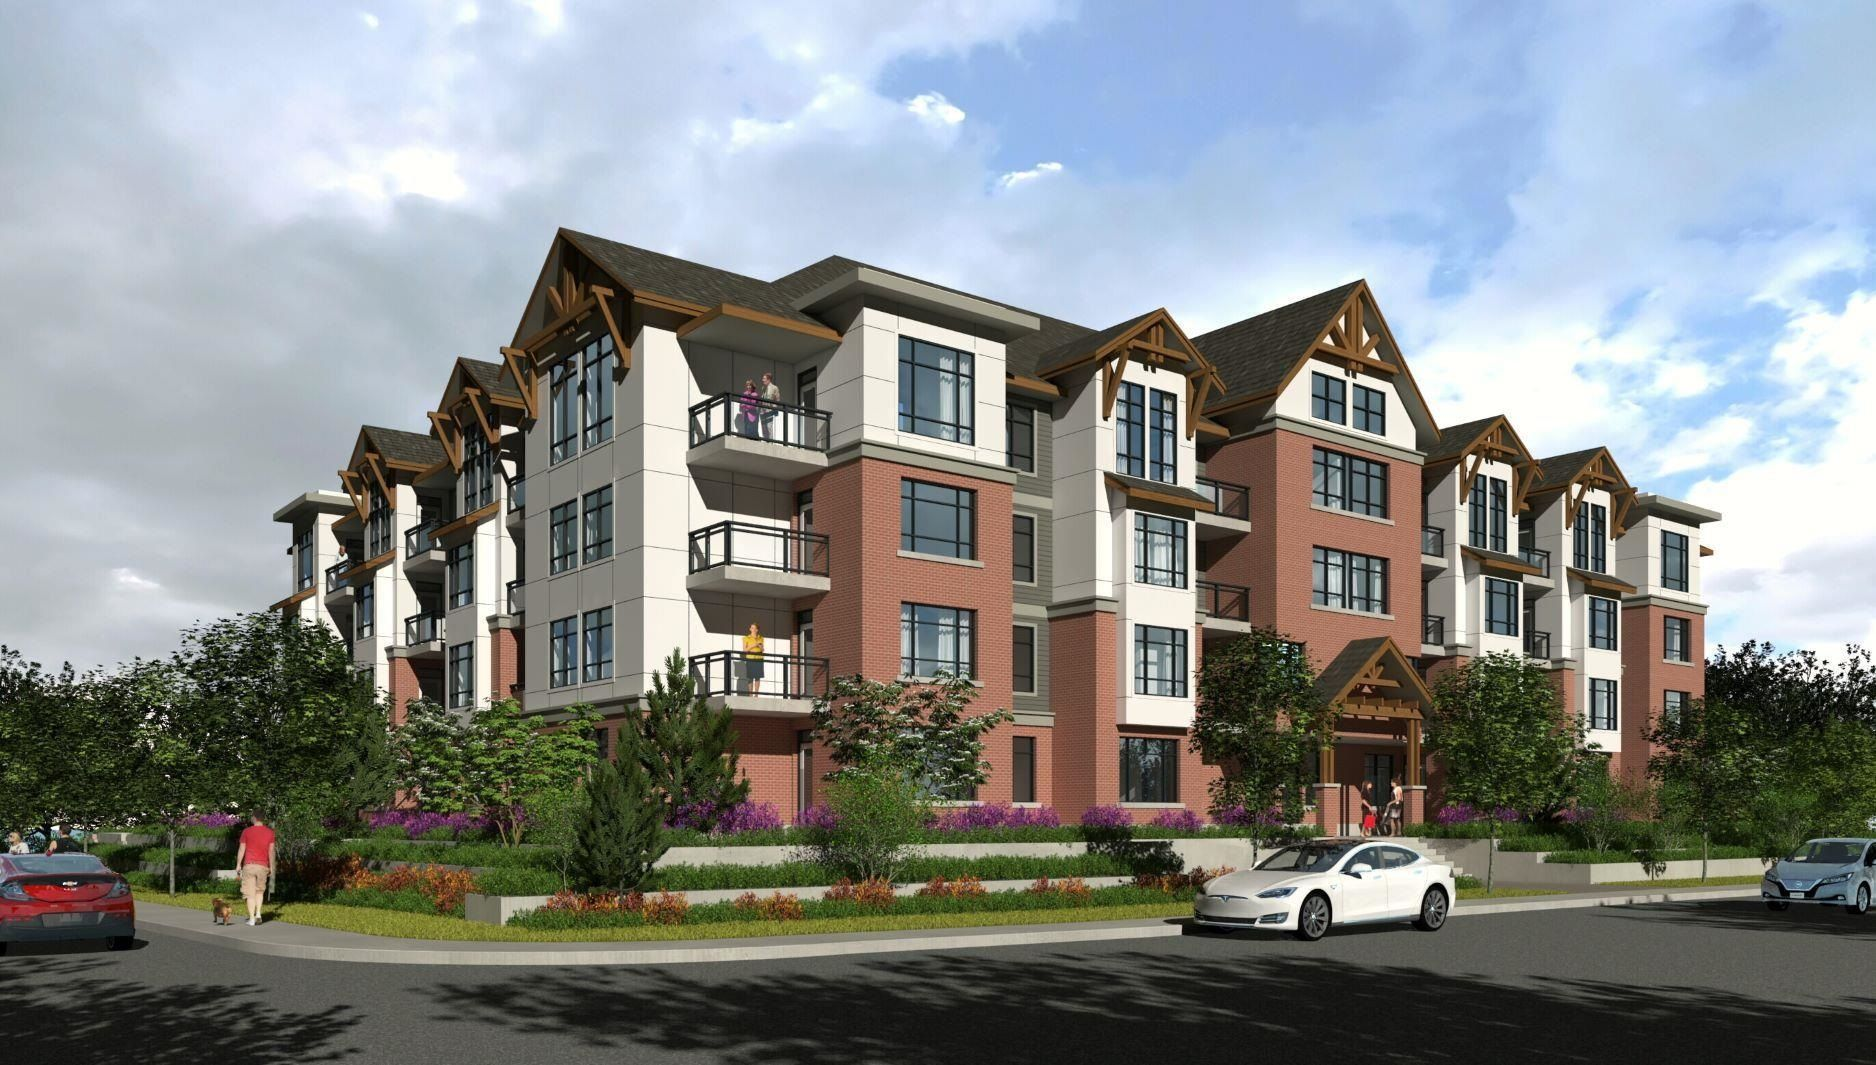 """Main Photo: 104 19945 BRYDON Crescent in Langley: Langley City Condo for sale in """"ATRIUM"""" : MLS®# R2619484"""